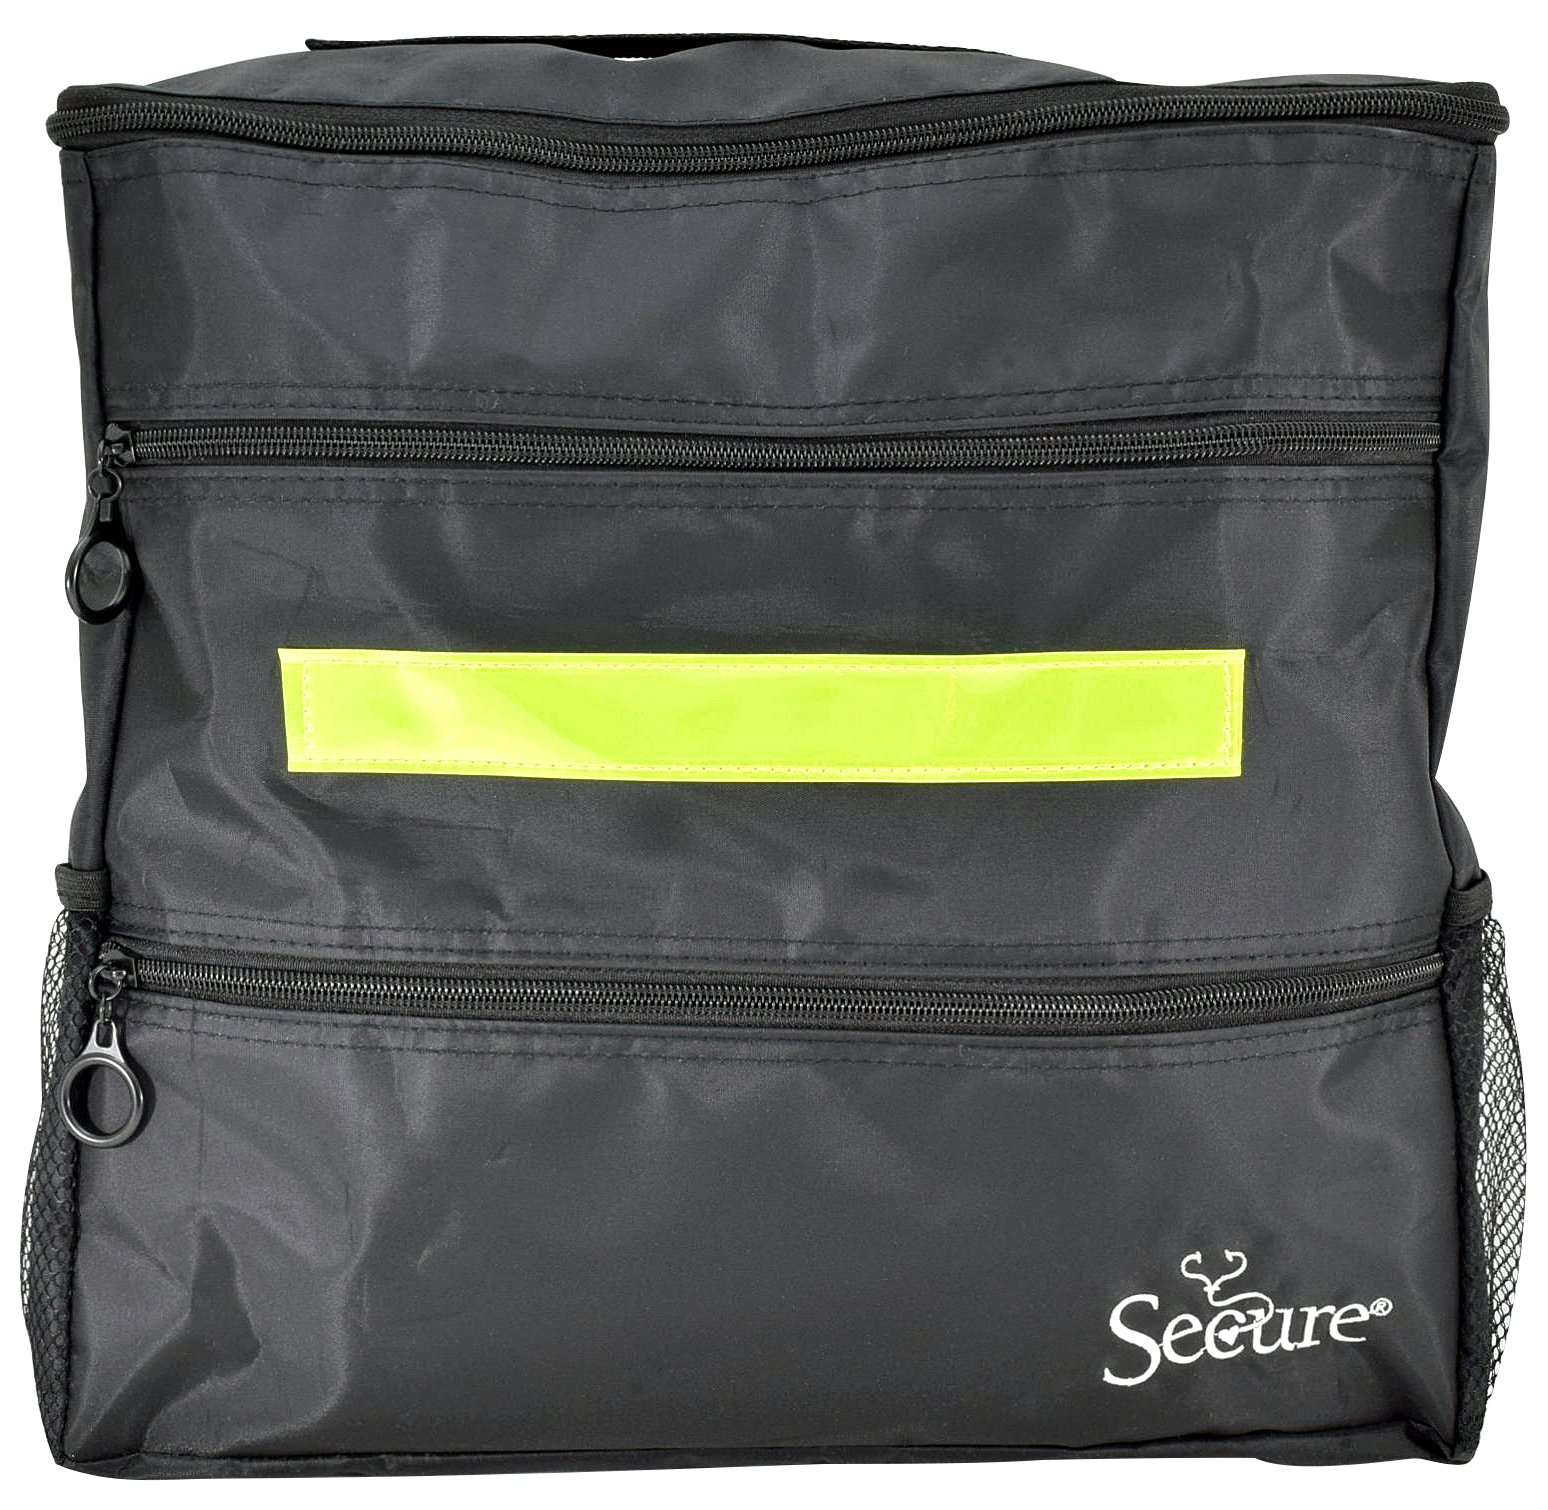 Secure WBP-1B Wheelchair Backpack Storage Bag With Top, Front, Side Pockets and Safety Reflector, Black (13'' x 12.5 ''x 3'')